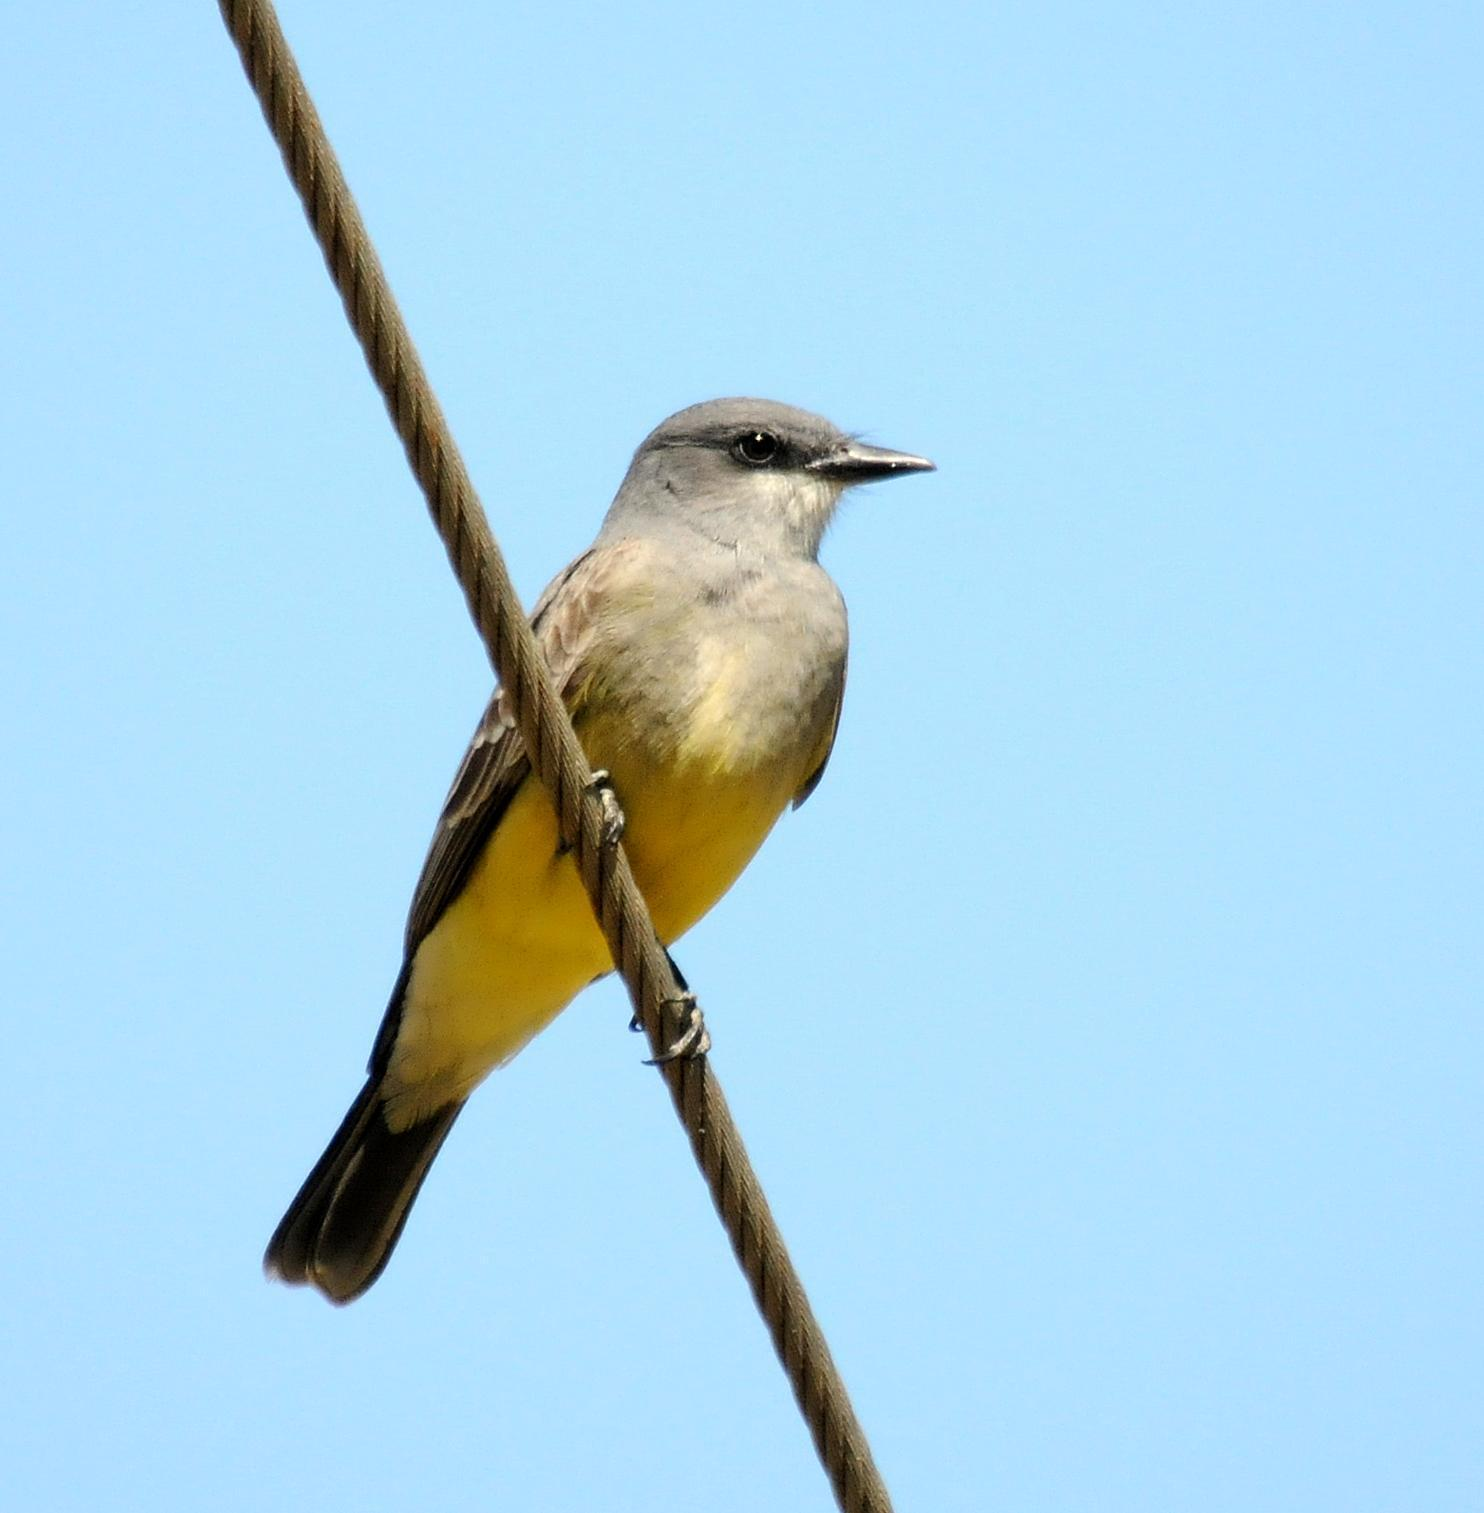 Cassin's Kingbird Photo by Steven Mlodinow